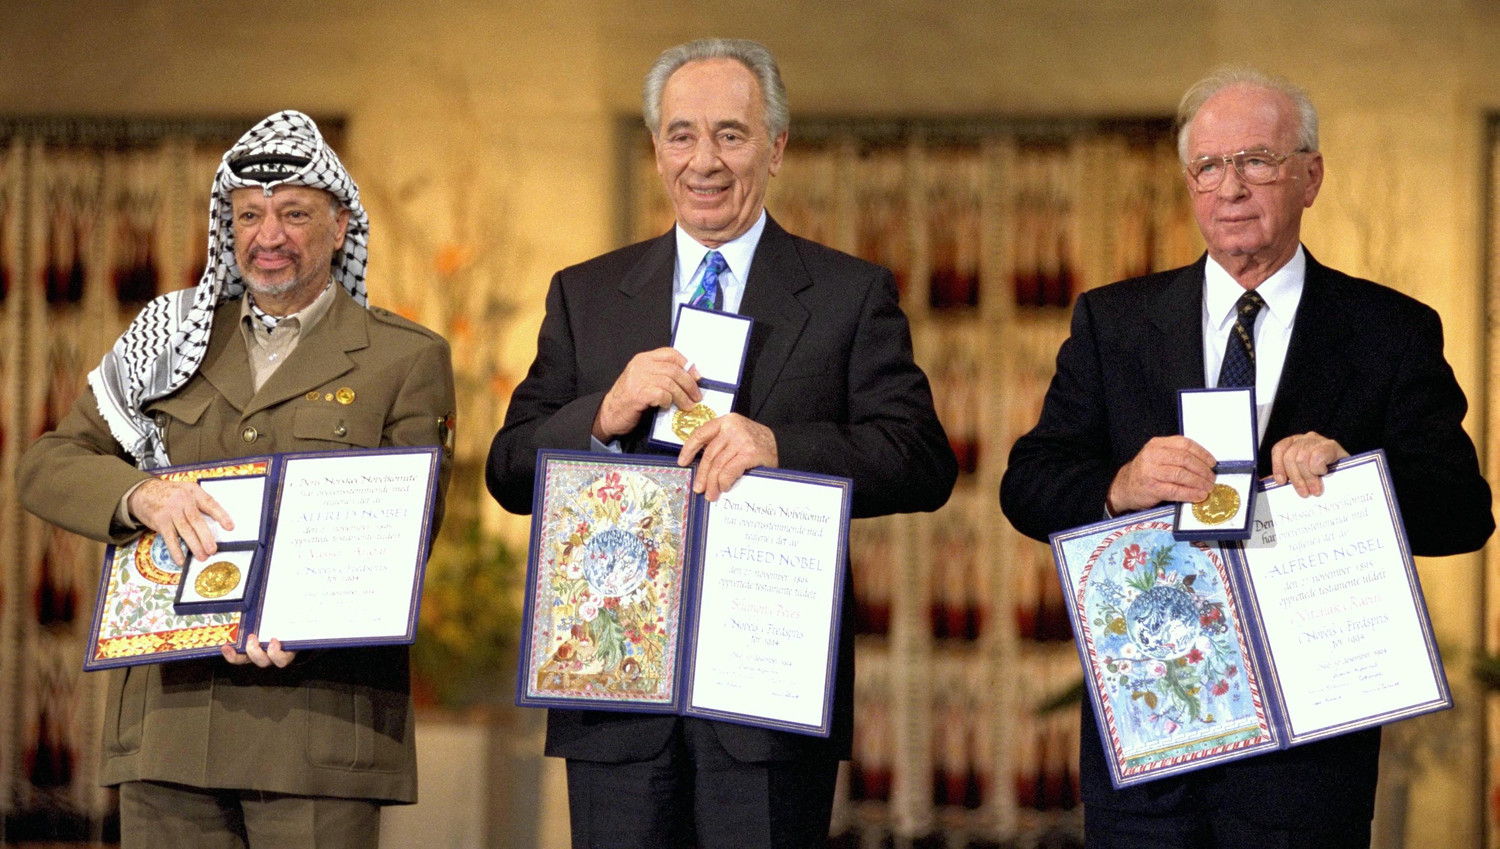 In 1994 (from left) Yasser Arafat, Shimon Peres and Yitzhak Rabin won the Nobel Peace Prize for their roles in the Oslo Accords. A permanent peace did not follow.